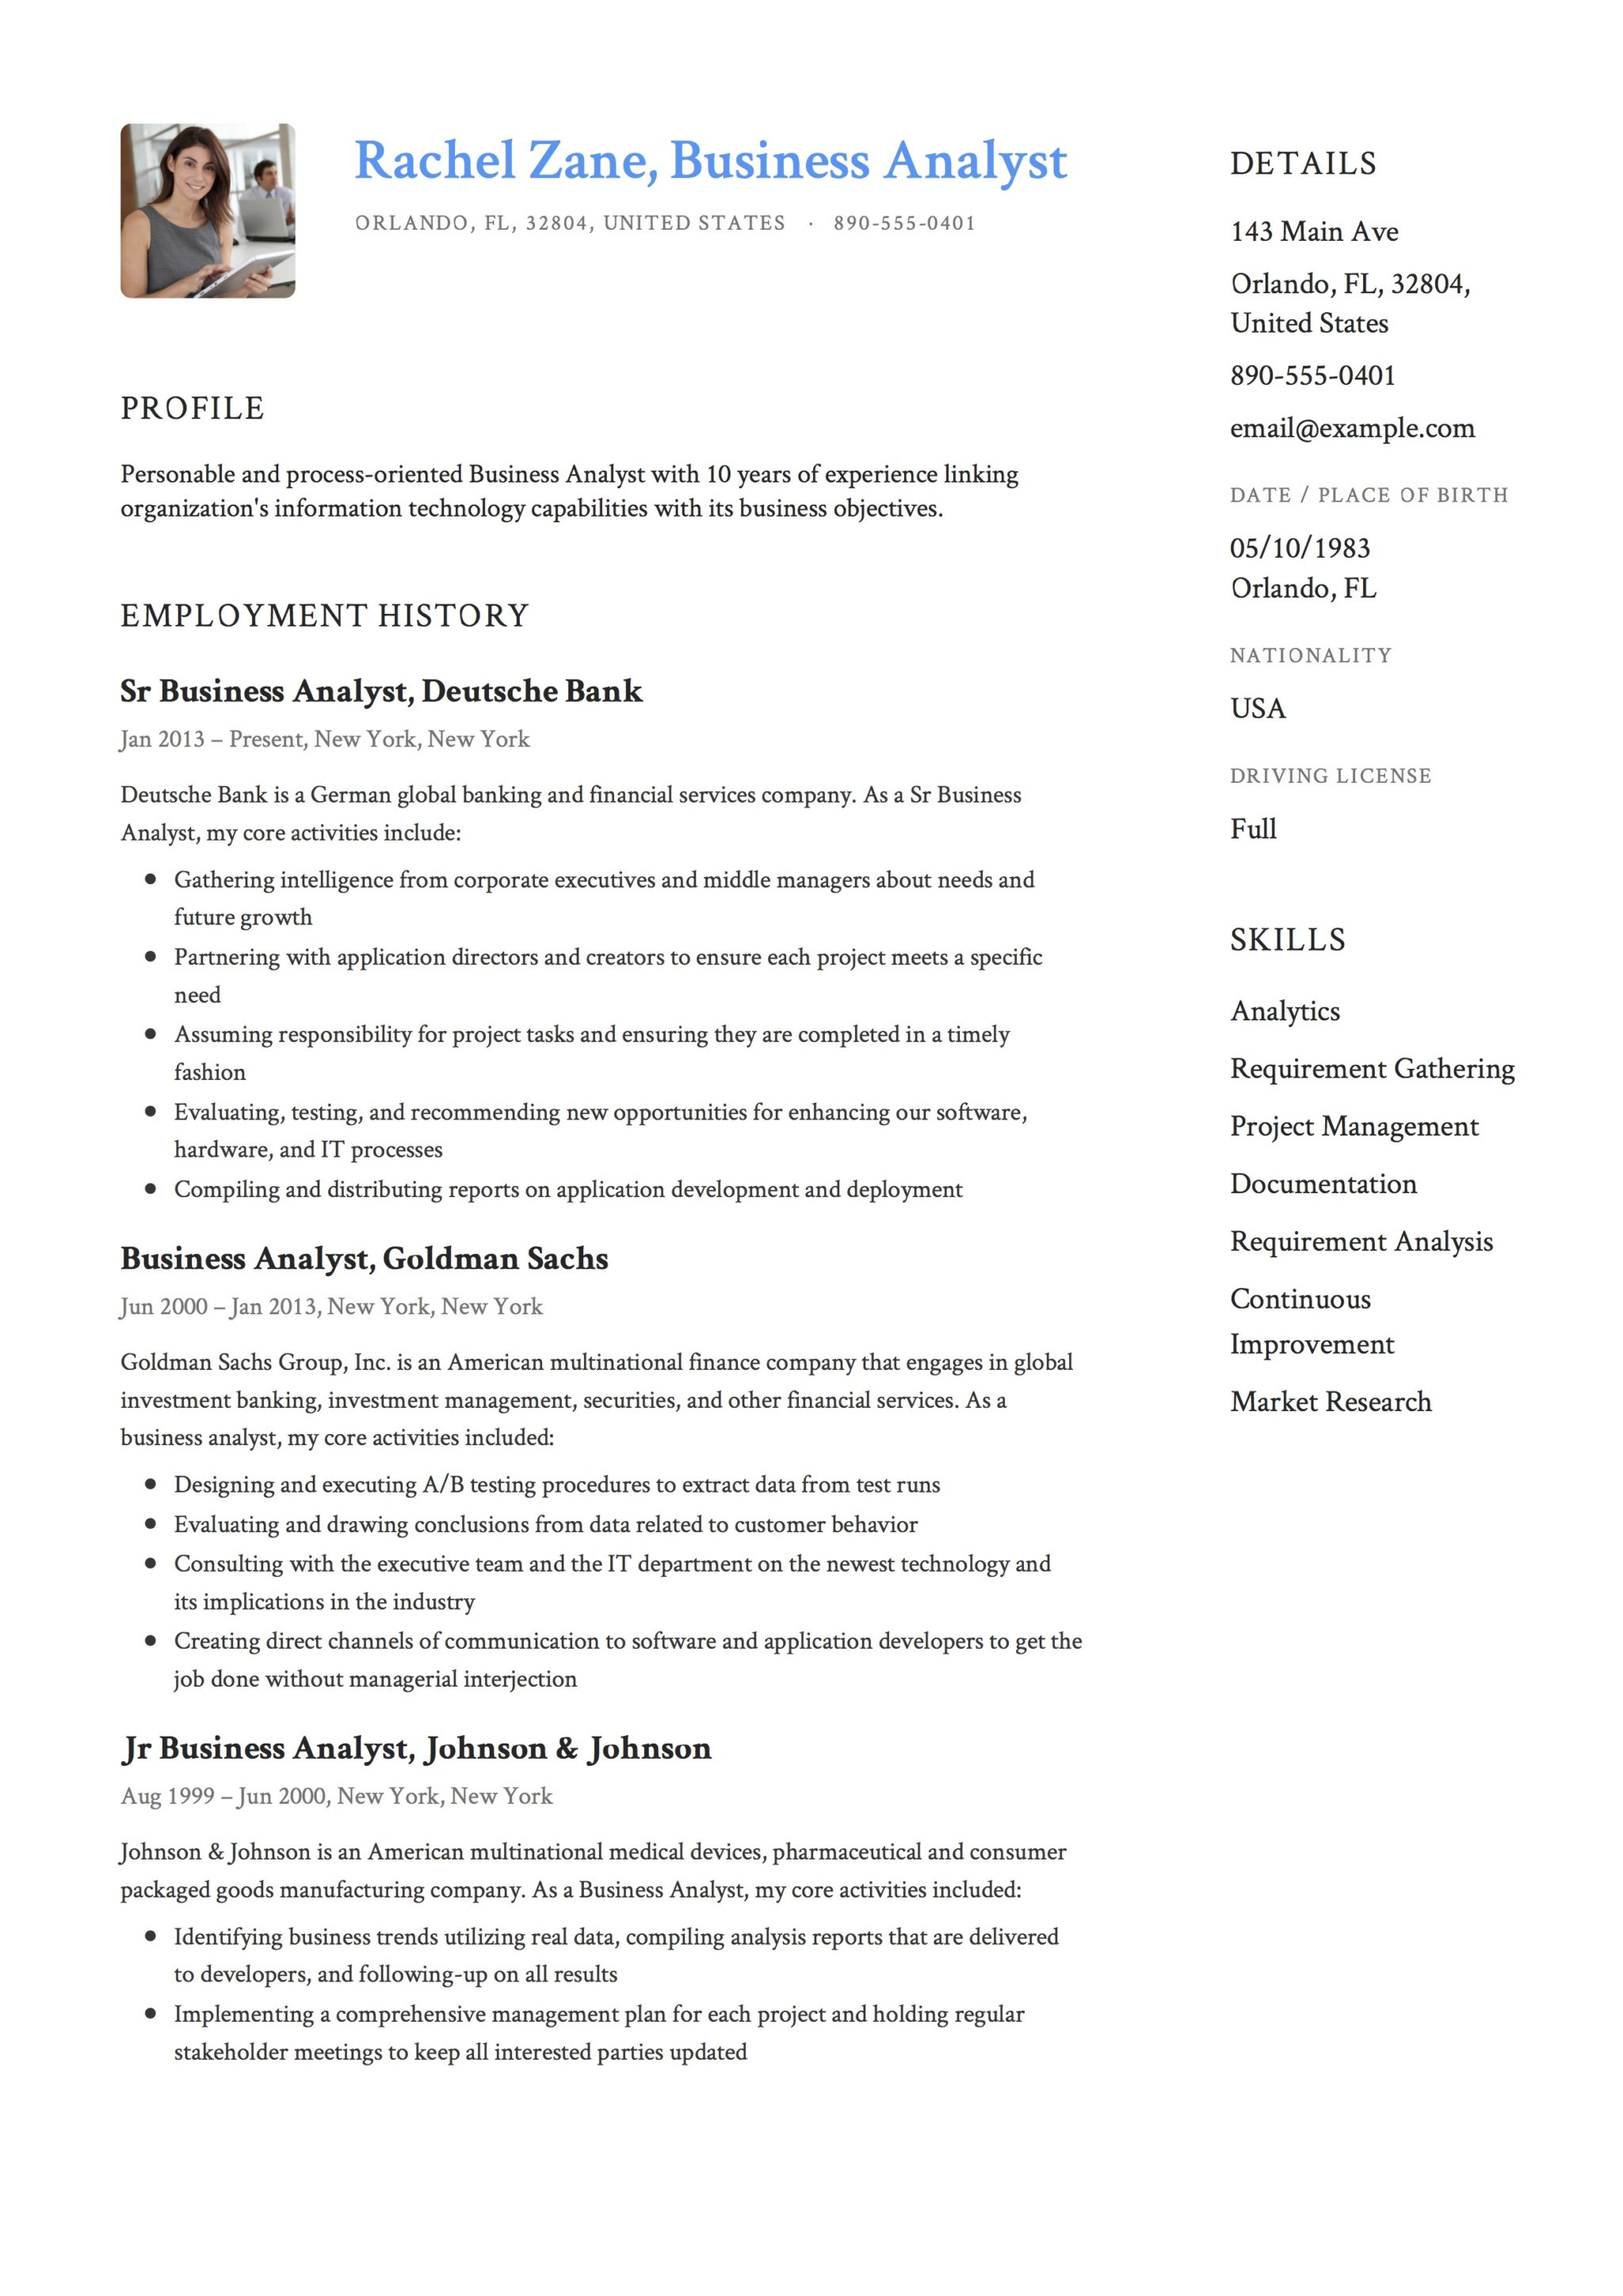 12 business analyst resume samples 2018 free downloads business analyst resume template maxwellsz